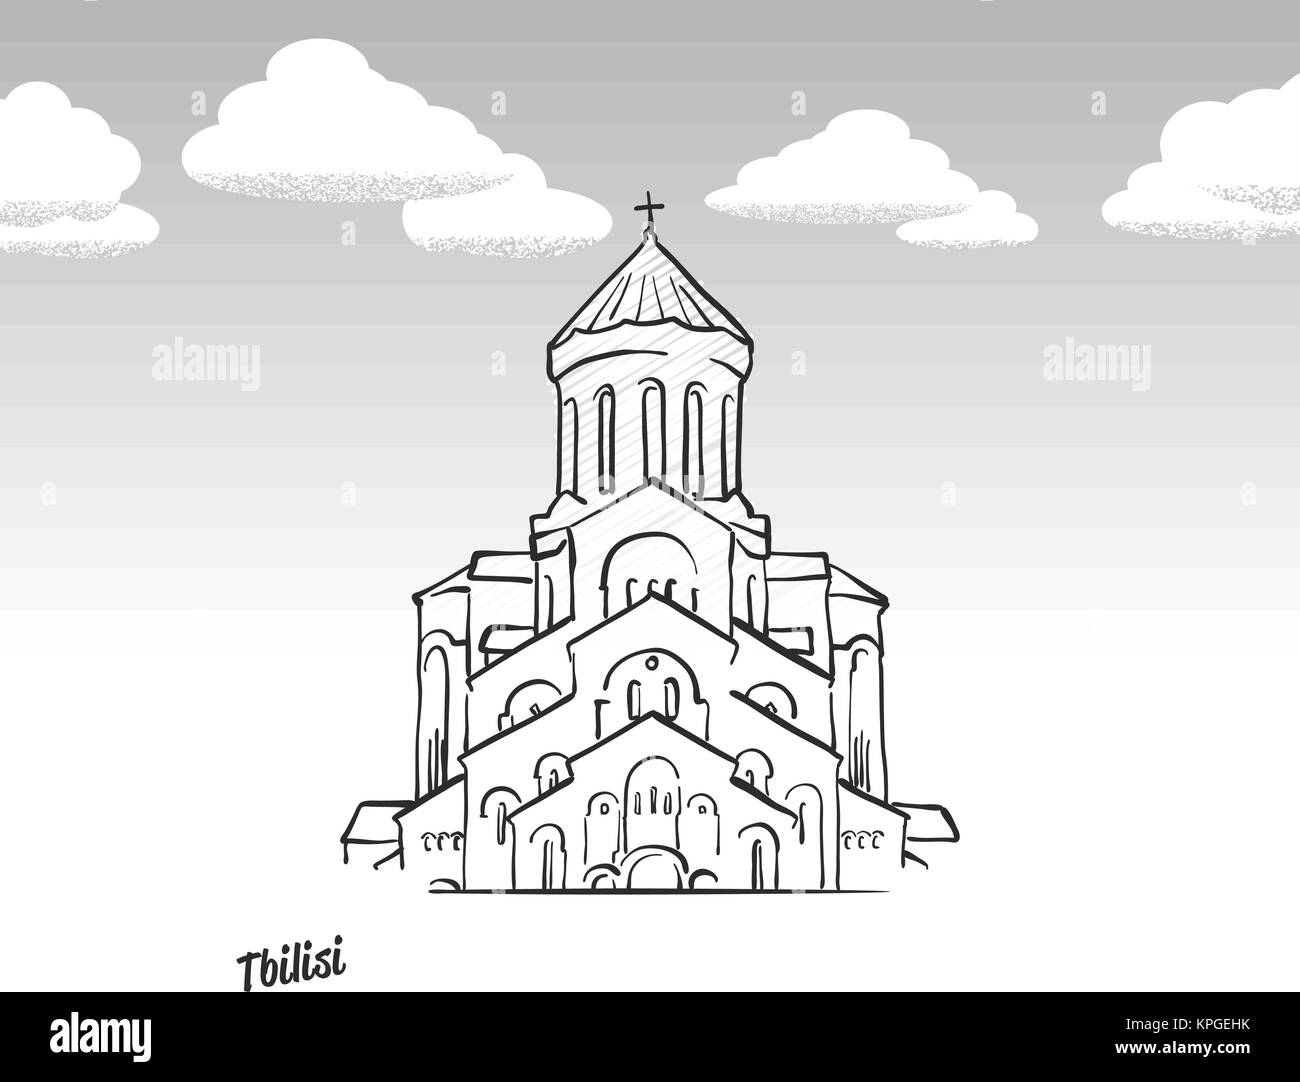 Tbilisi, Georgia famous landmark sketch. Lineart drawing by hand. Greeting card icon with title, vector illustration - Stock Vector